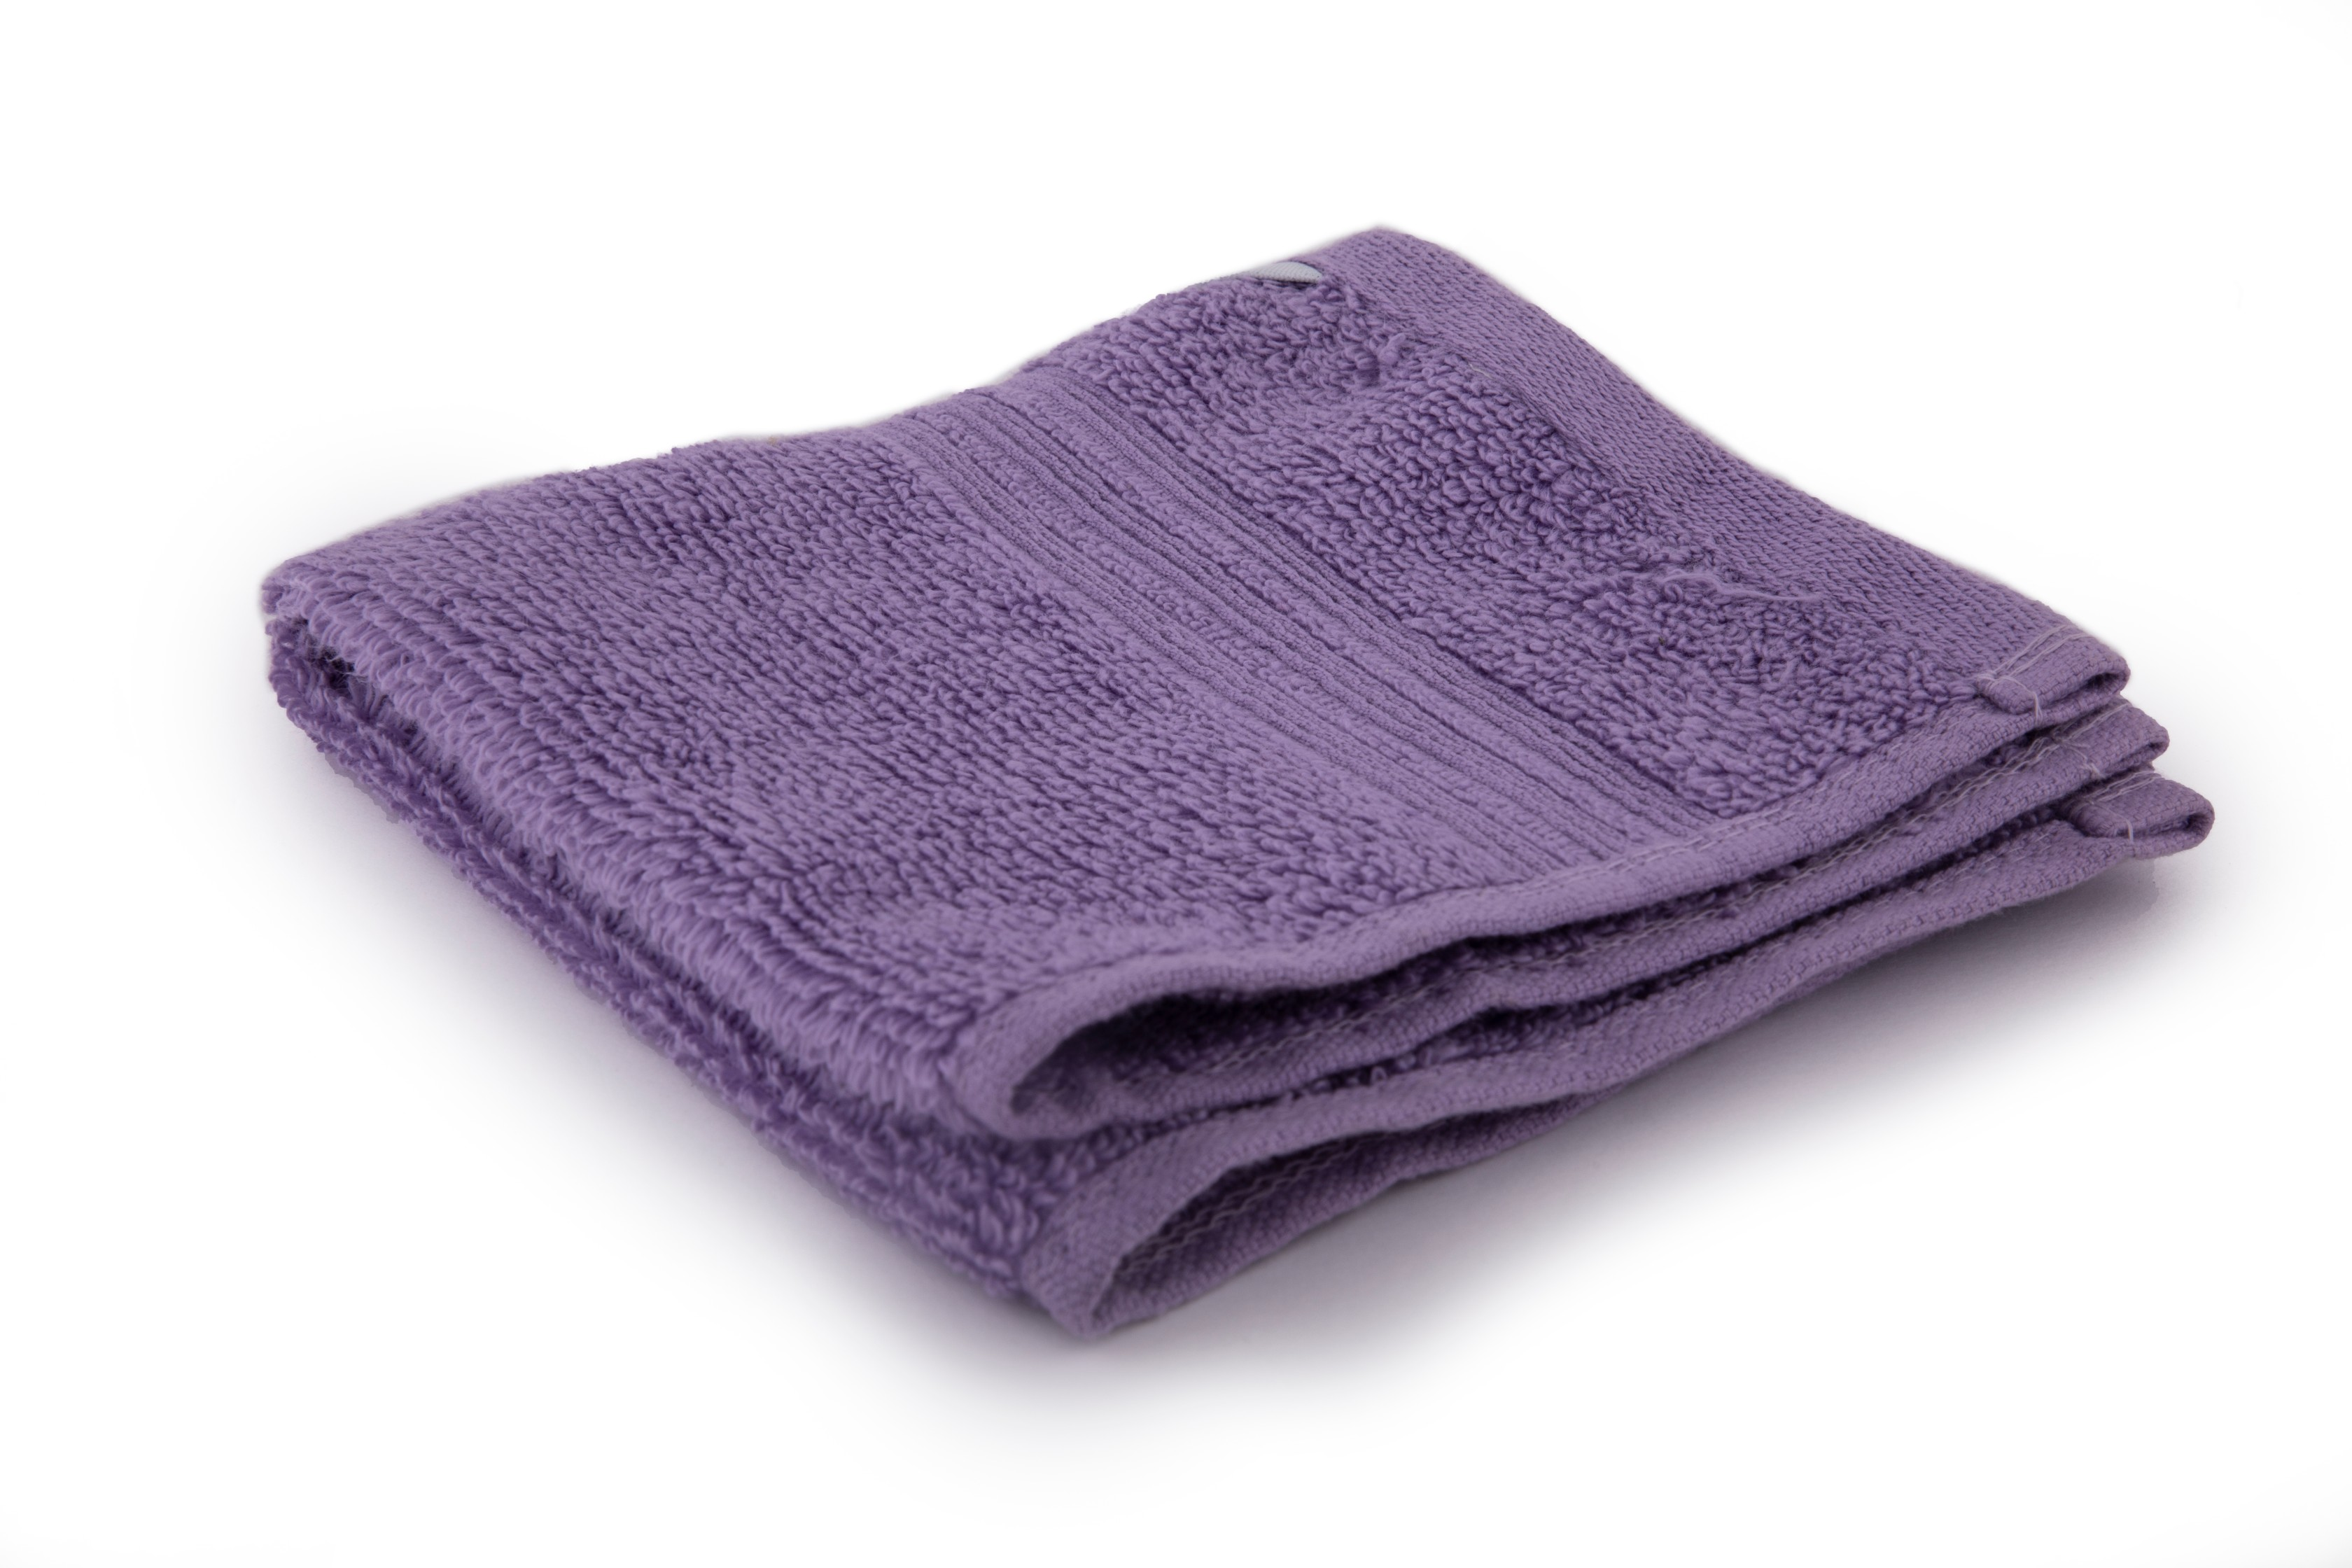 Spaces Swift Dry 1 Nano Face Towel Cotton Face Towels in Lavender Colour by HomeTown